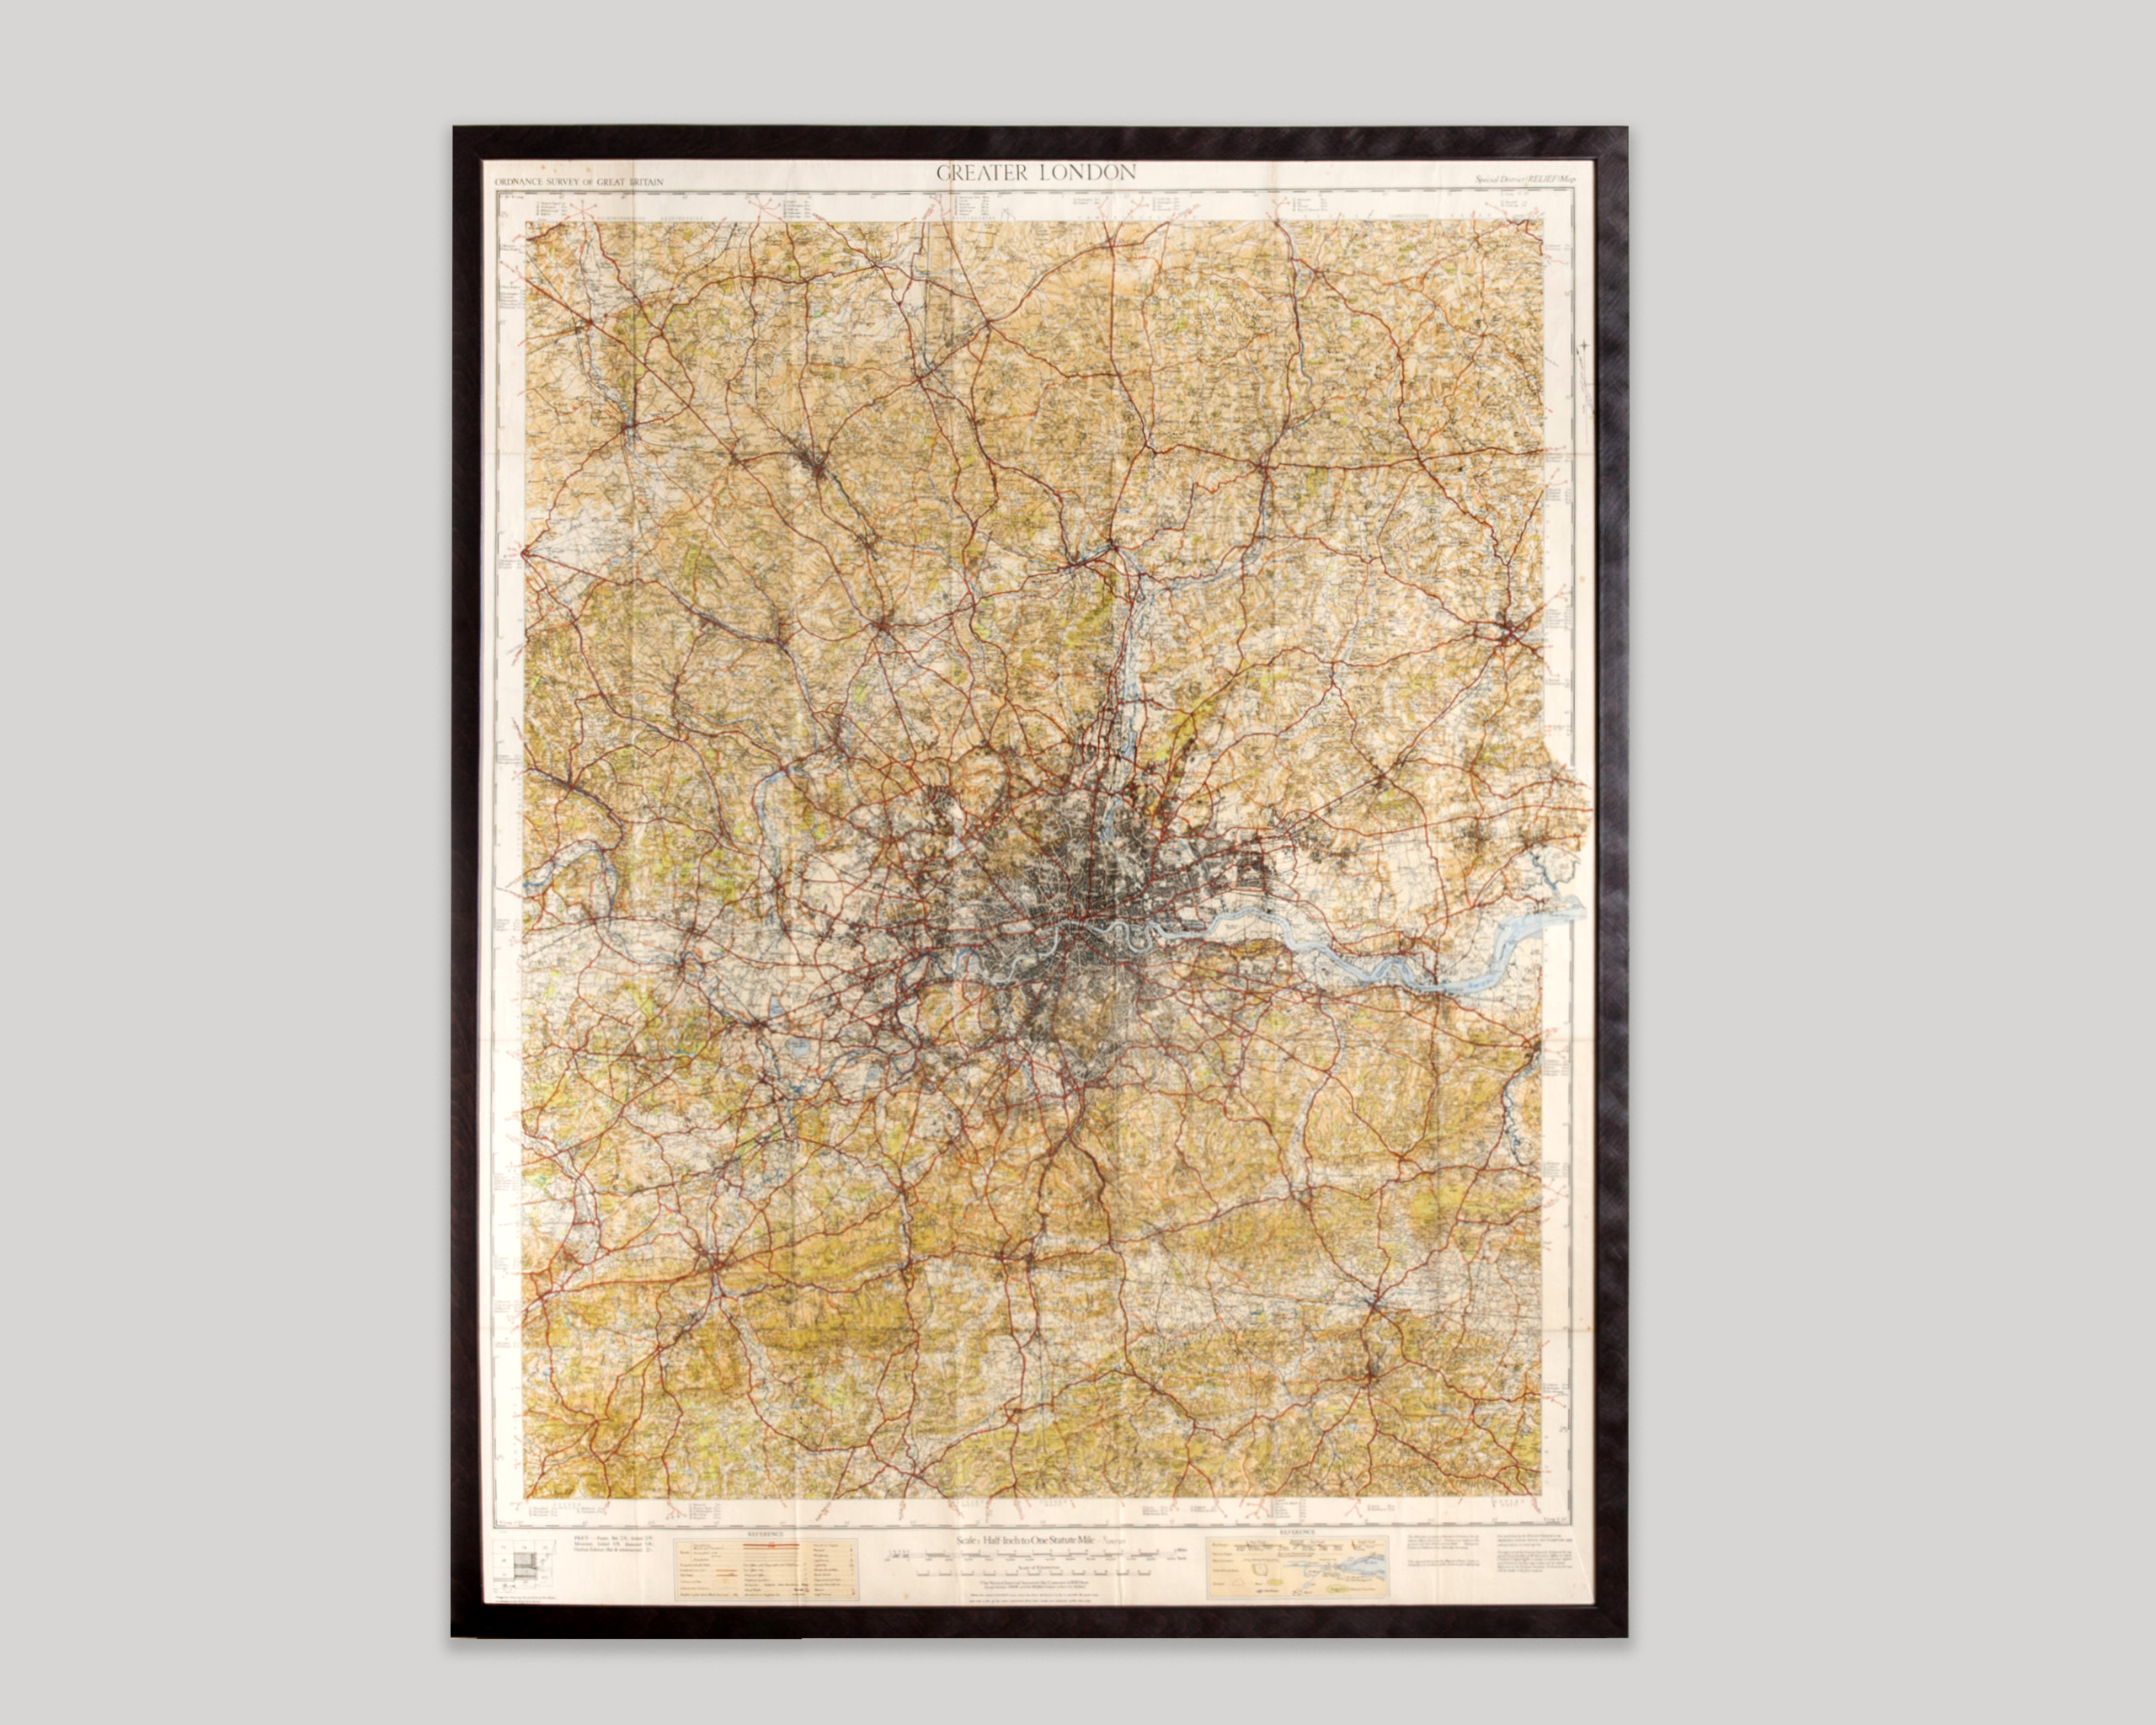 Framed Map Of Greater London